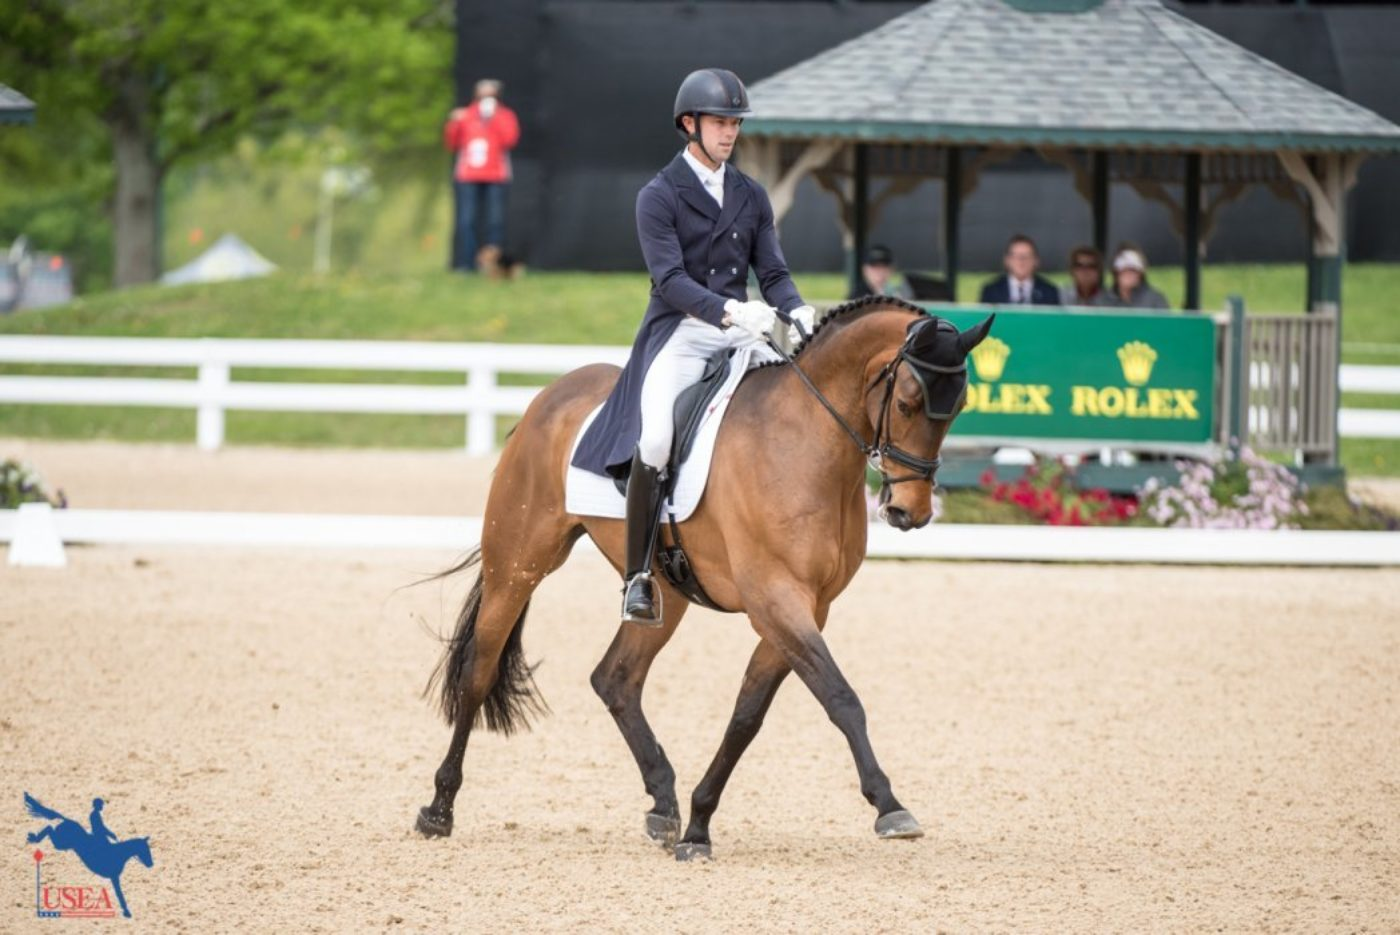 7thT - William Coleman III and Obos O'Reilly - 48.6